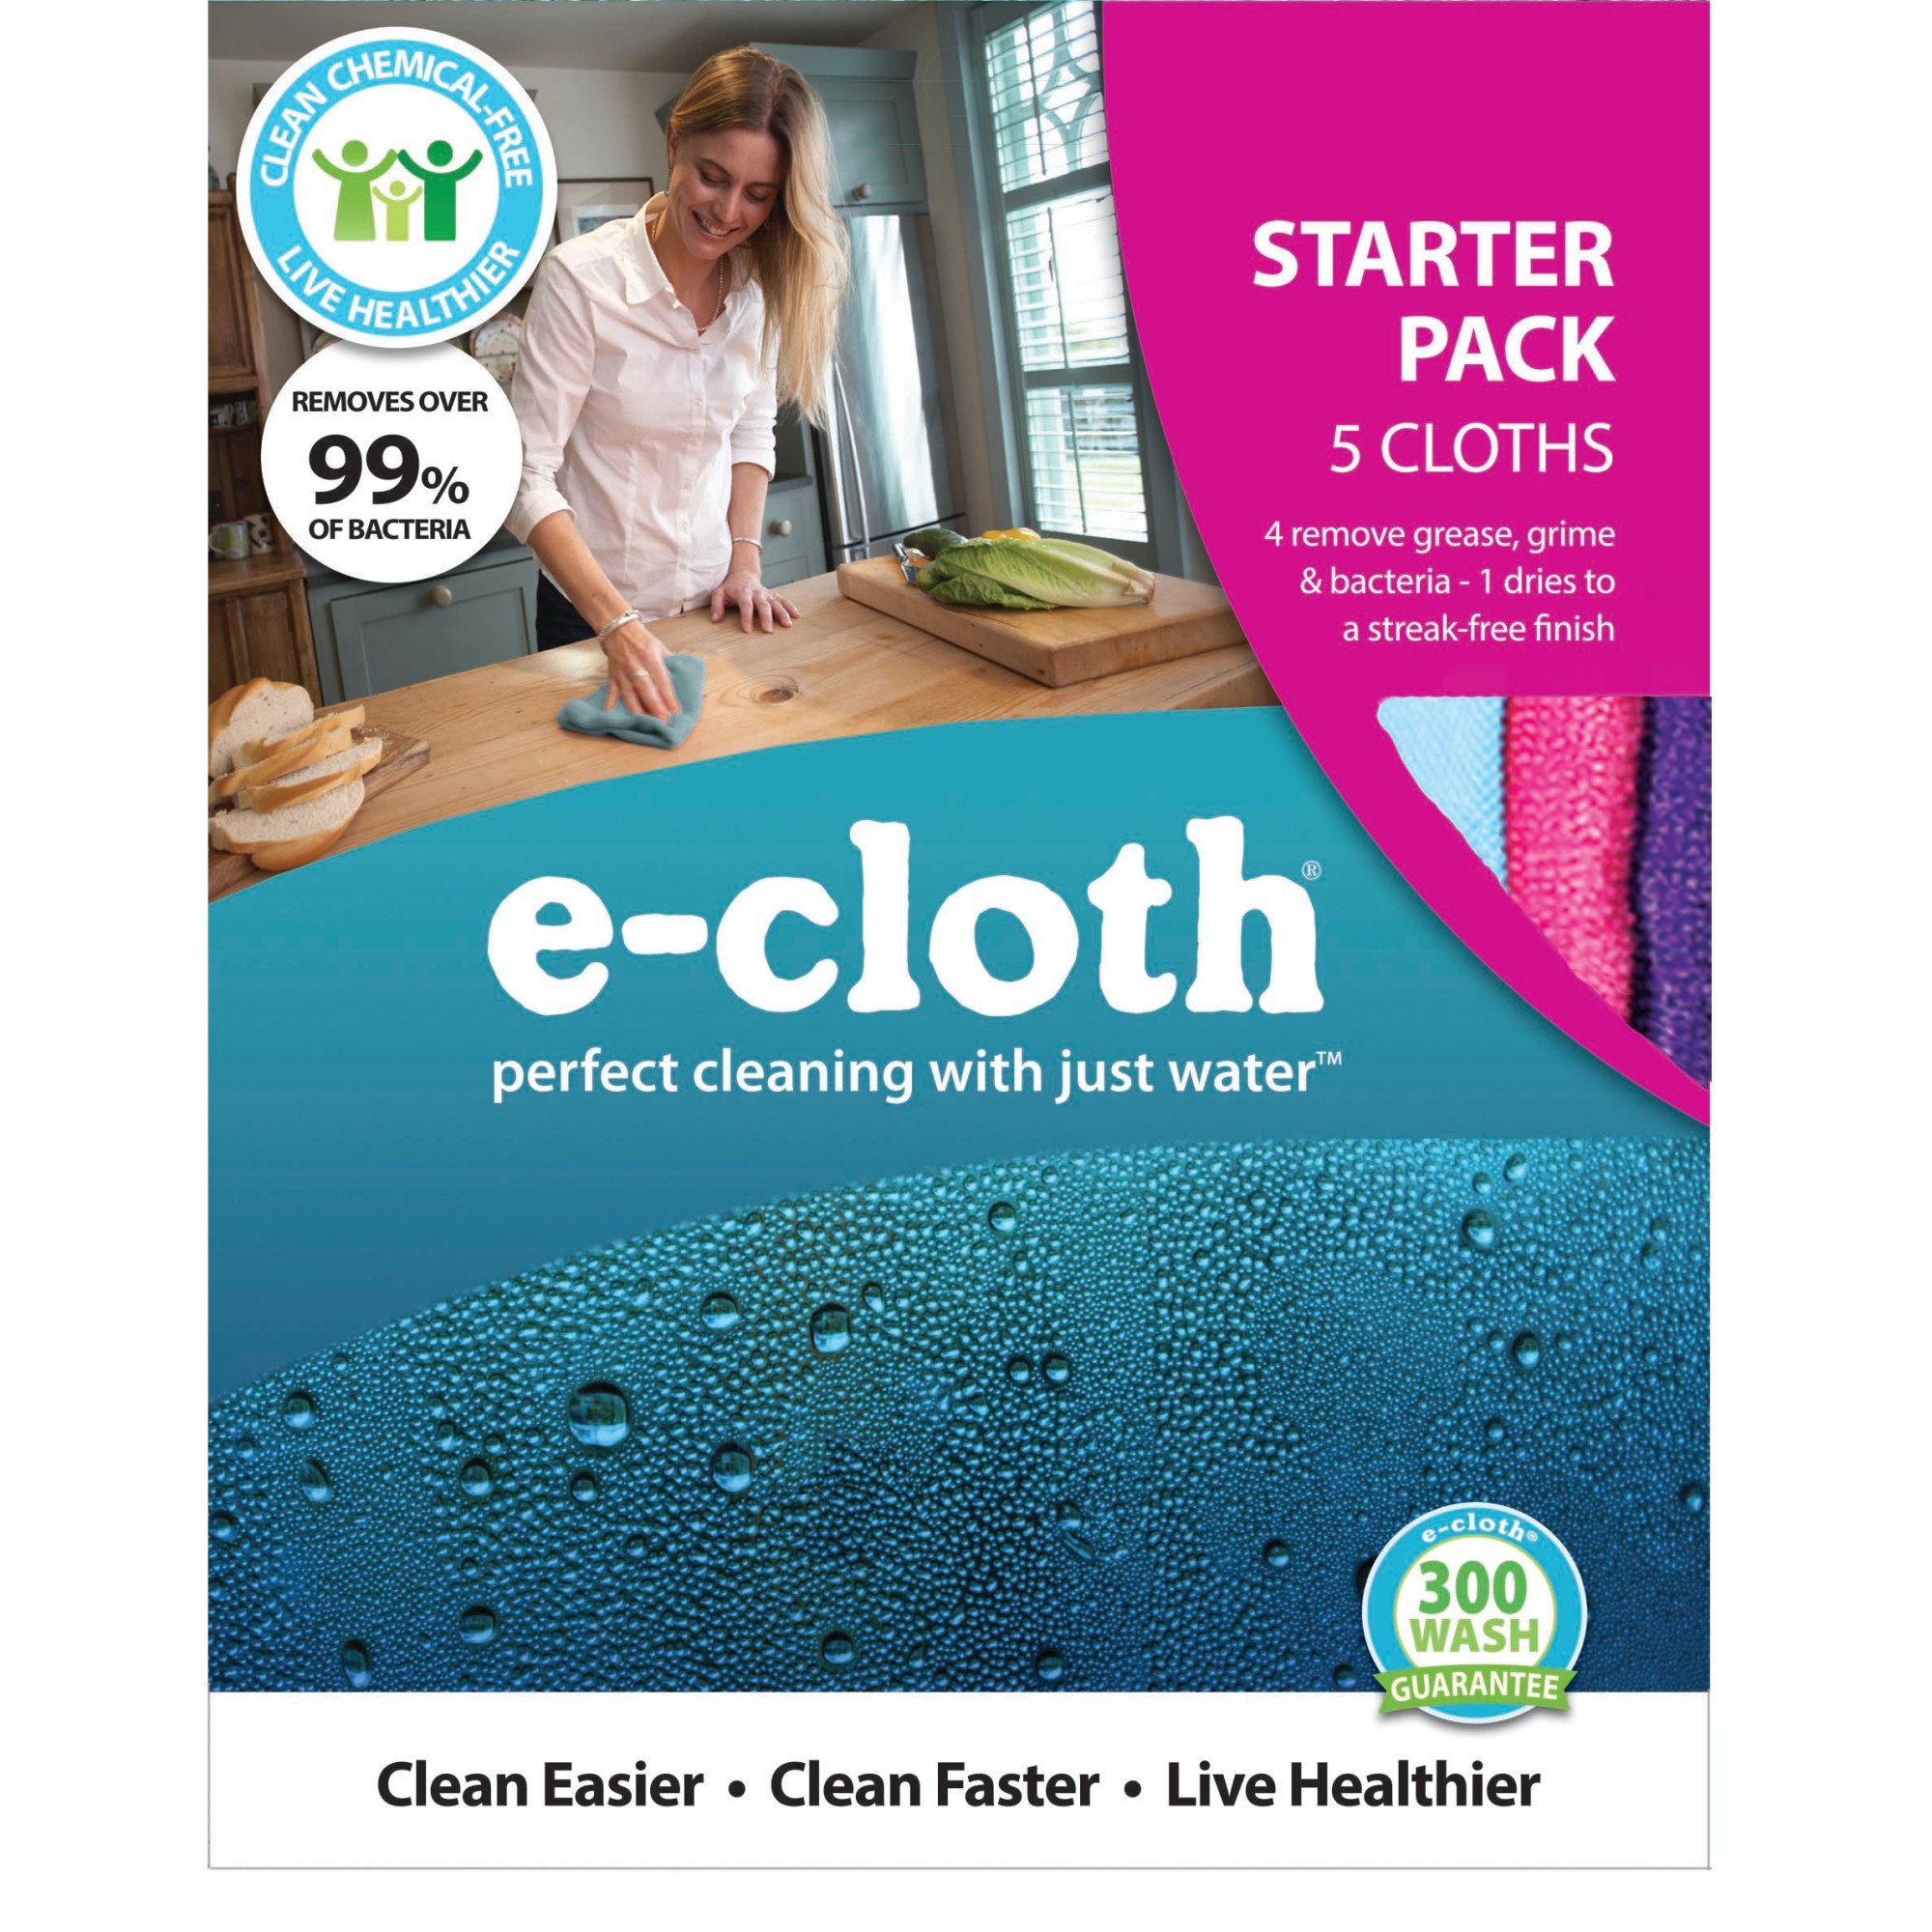 E-Cloth Home Cleaning Starter Pack for Chemical-Free Cleaning with Just Water - 5 Cloth Set